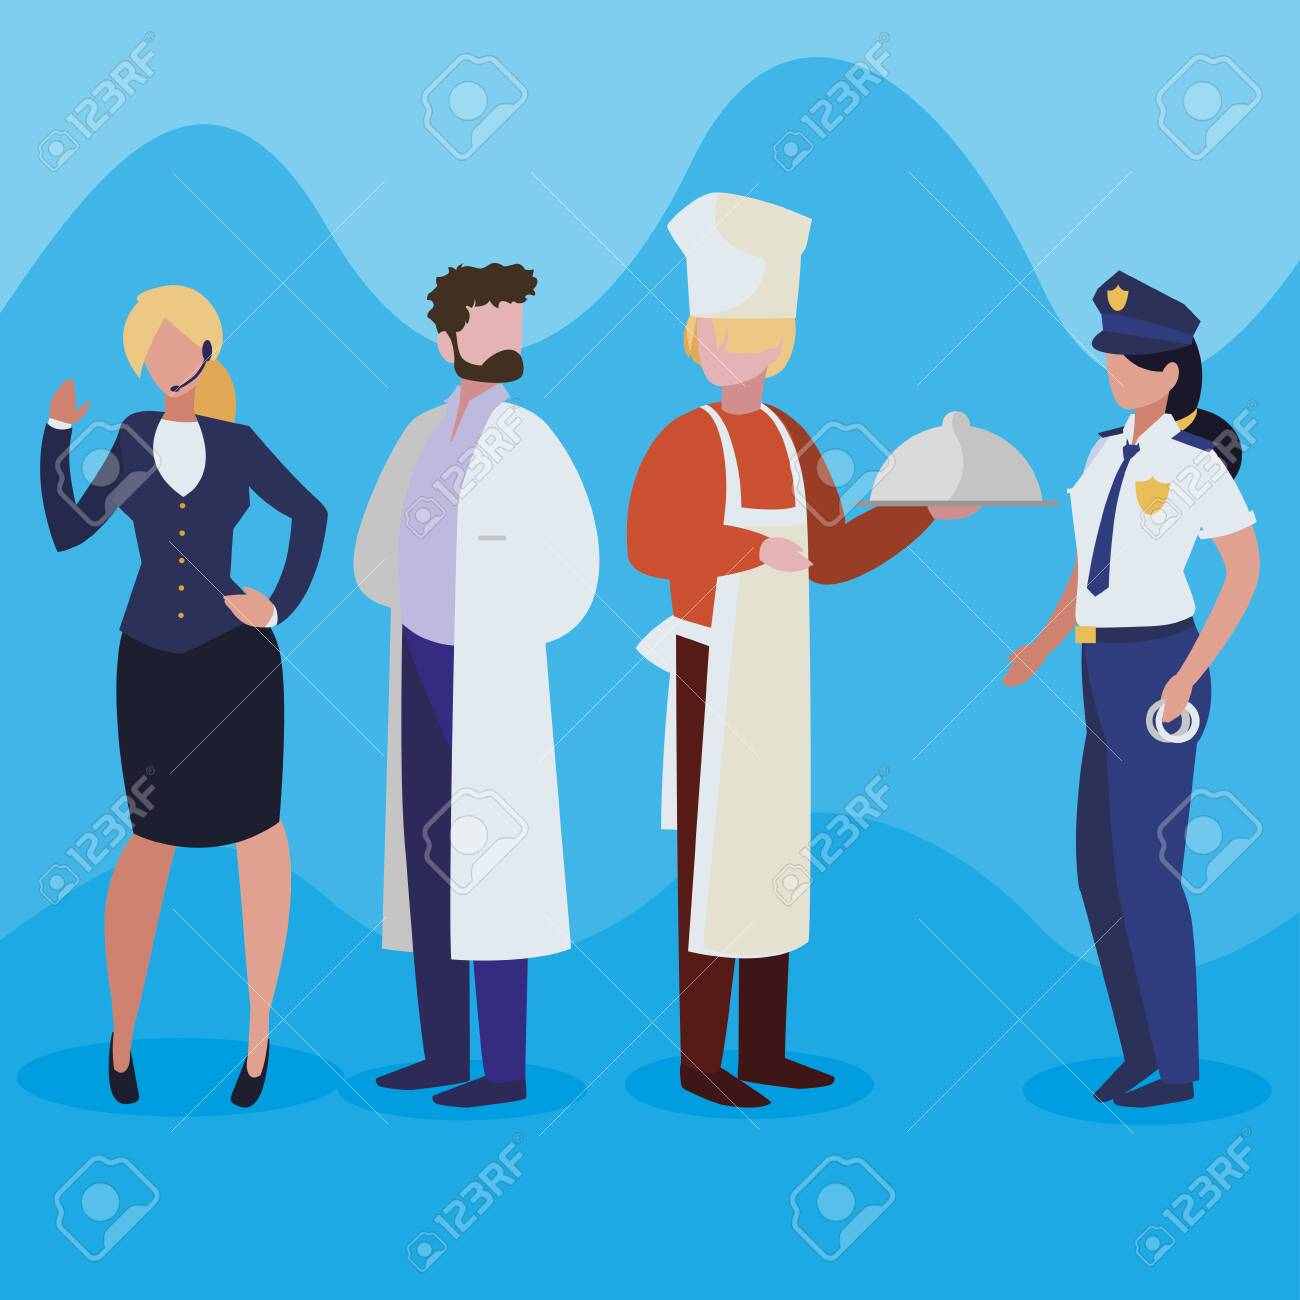 group of professional workers characters vector illustration design - 130287369